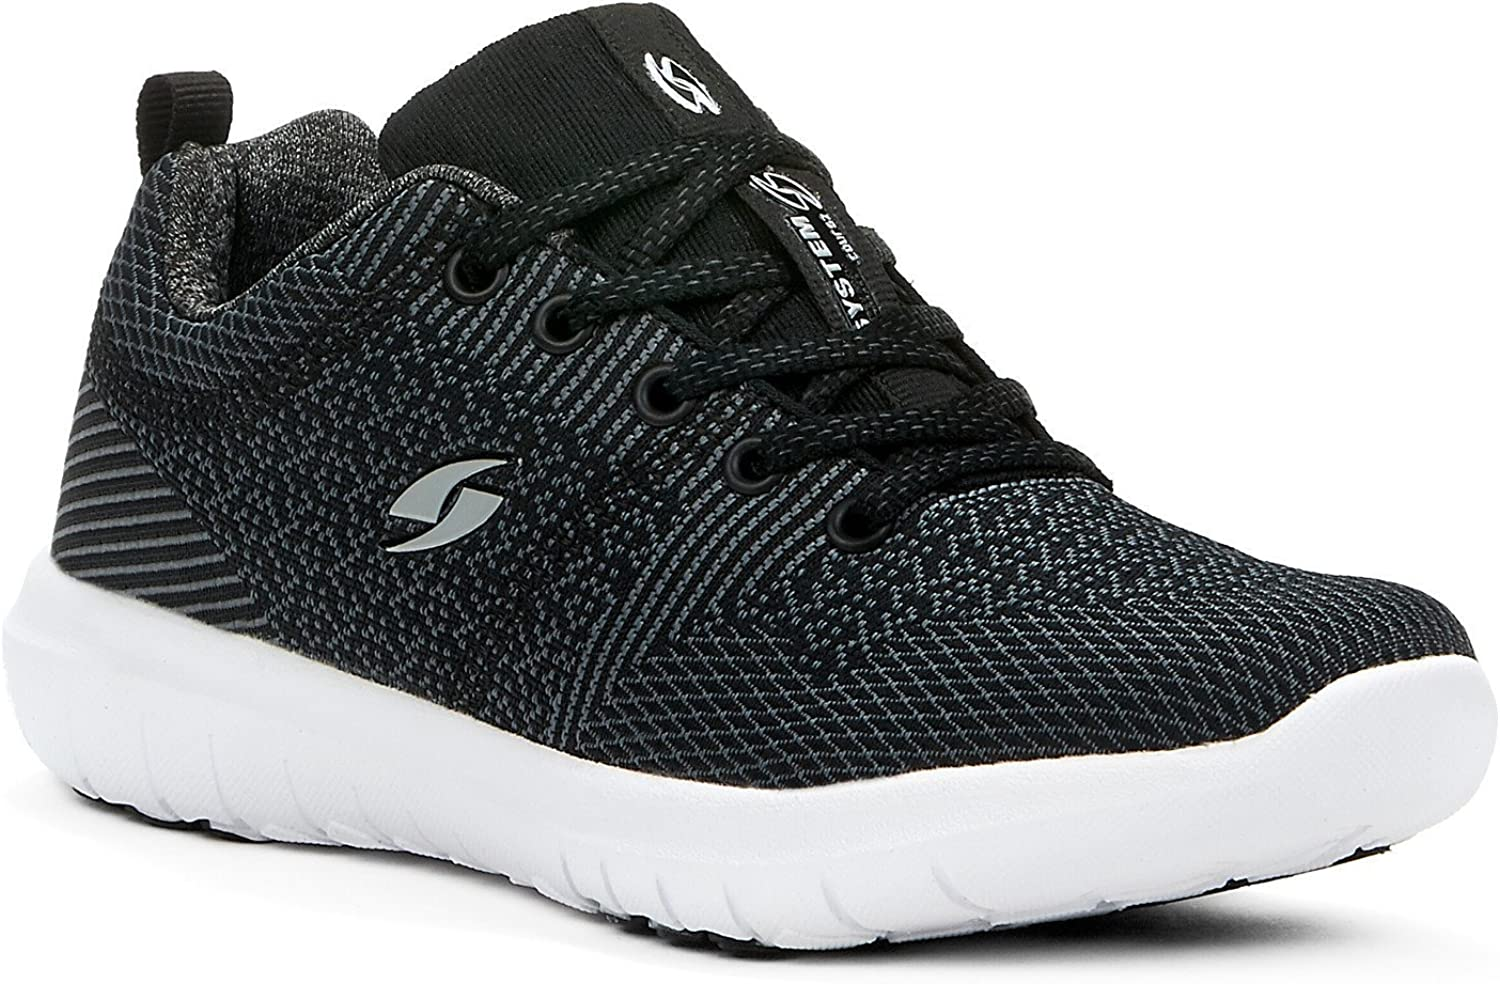 Crosslite Womens Walking shoes - Lightweight & Breathable & Casual & Comfortable - Made from Knitted Textile Fabric - Perfect for Spring Summer Fall Winter